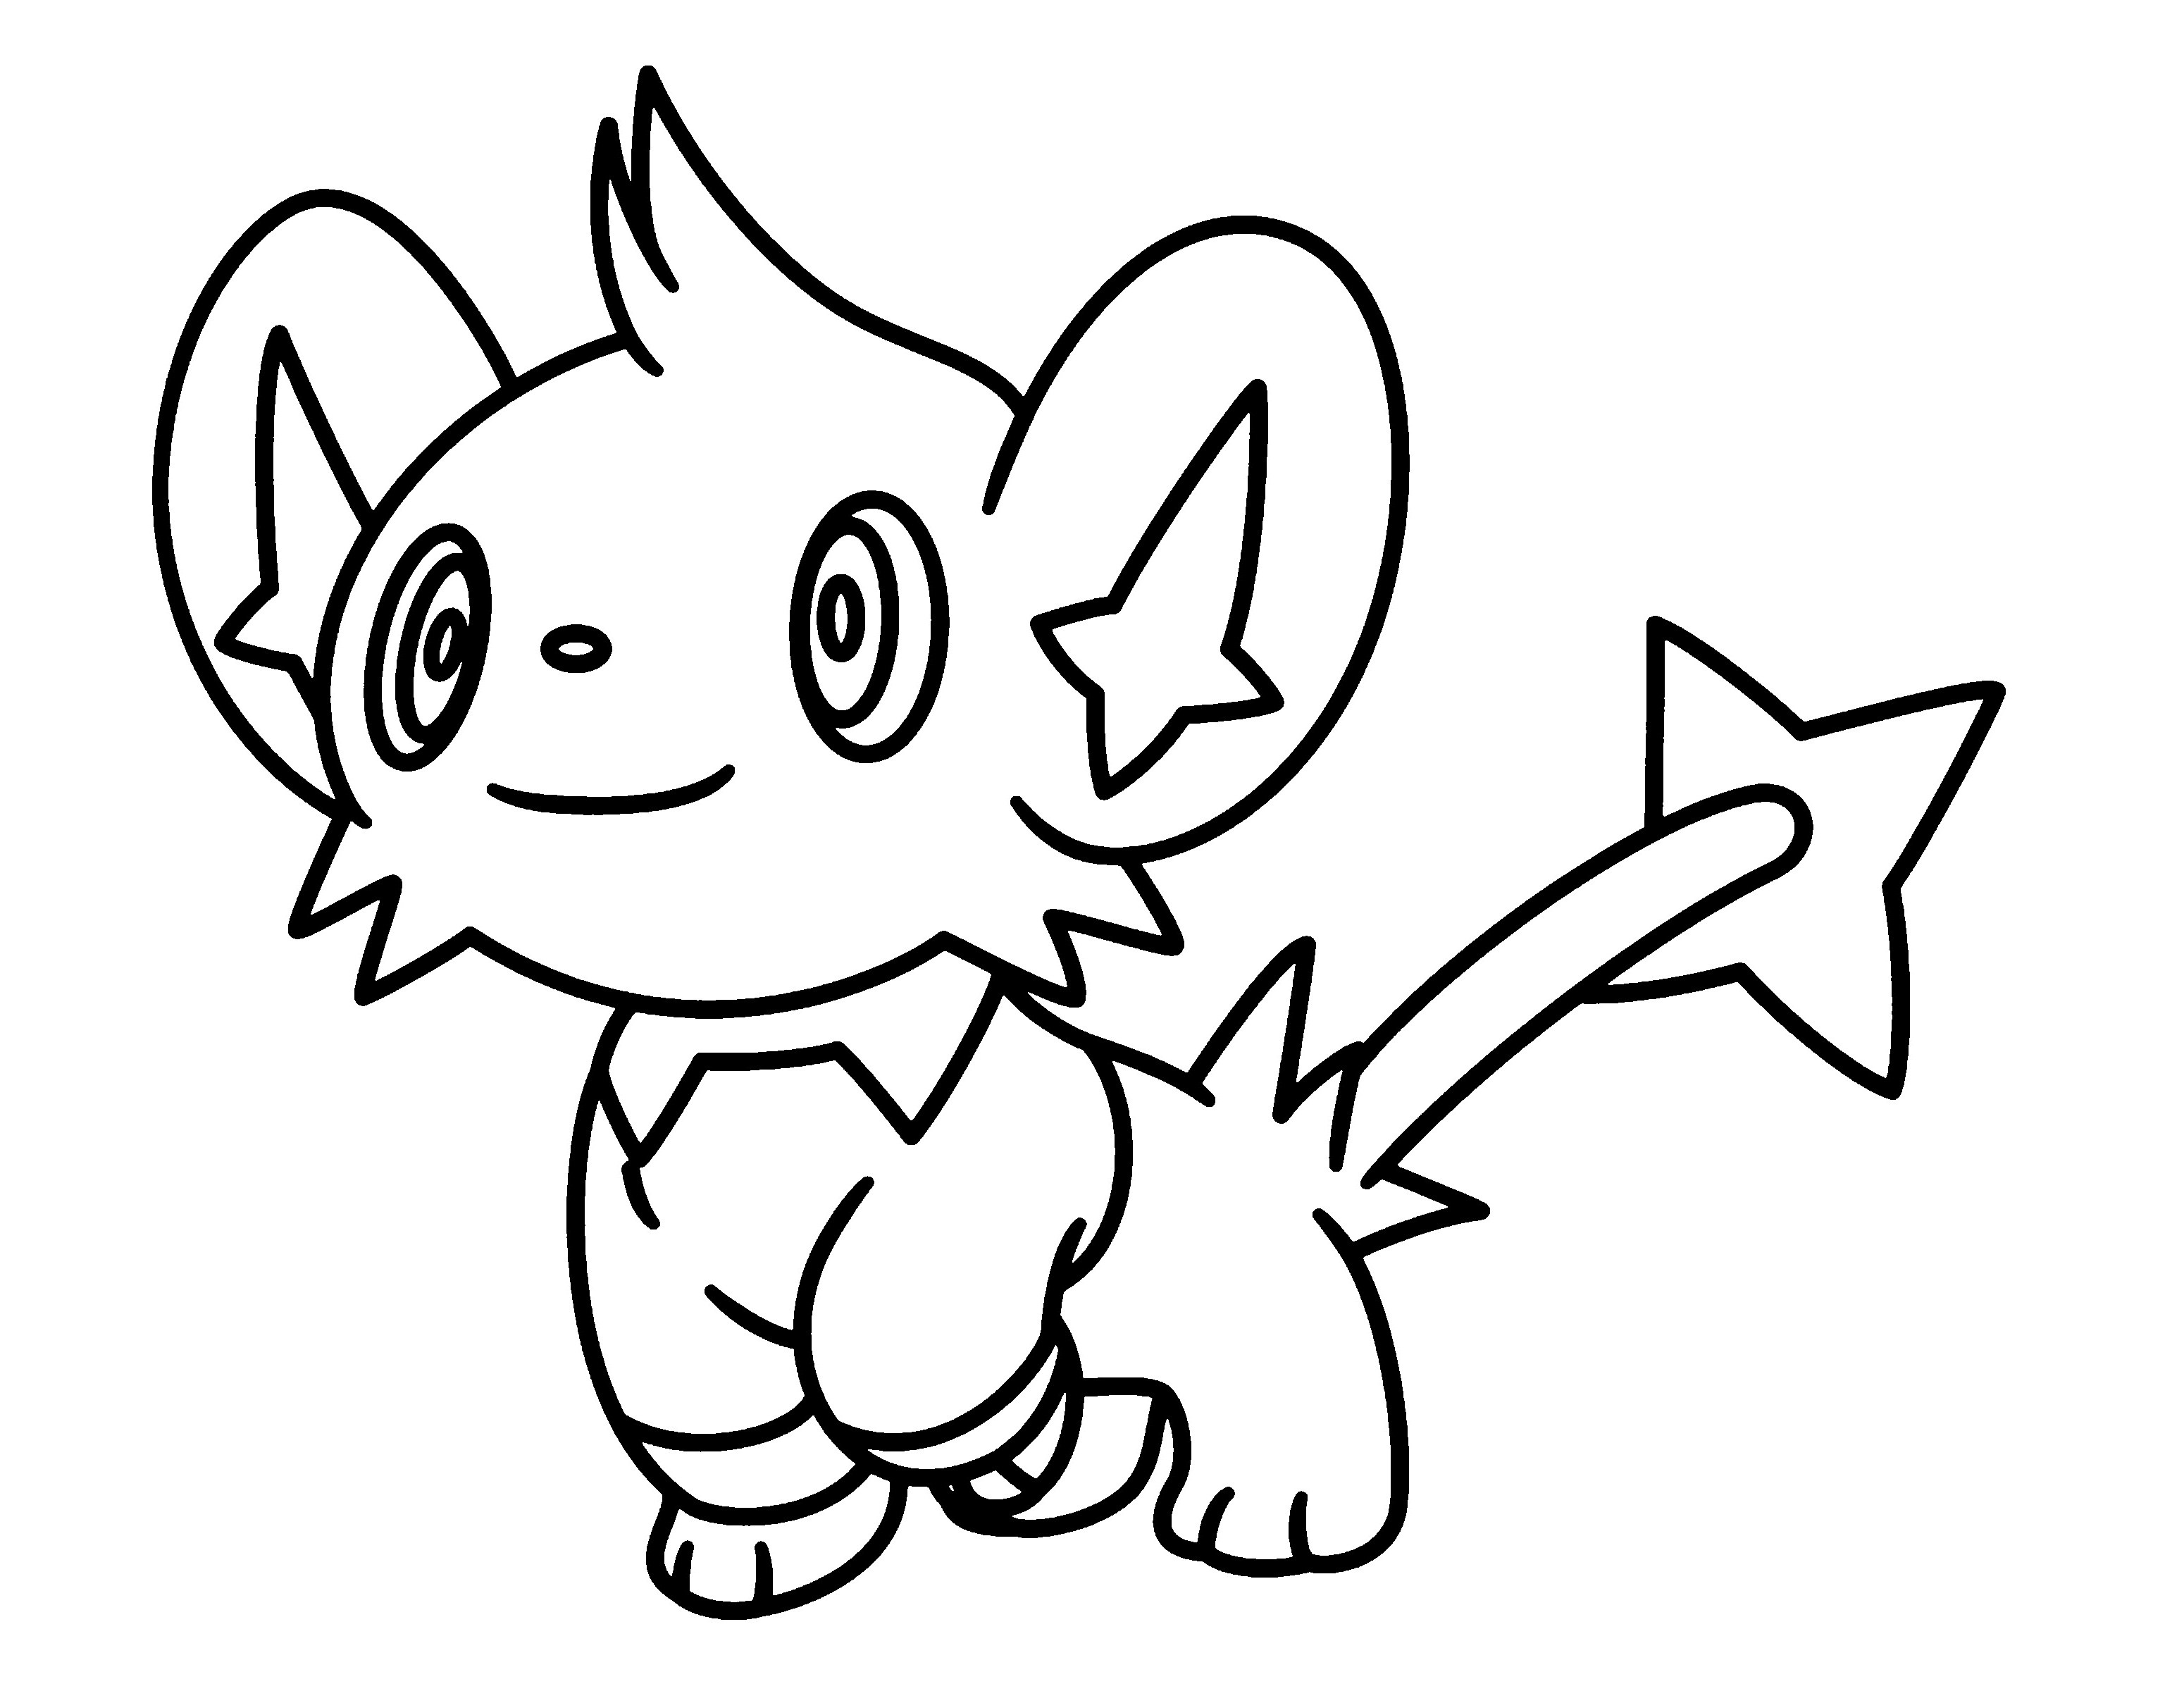 3100x2400 Smiling Pokemon Coloring Pages For Kids New Pokemon Ball Coloring